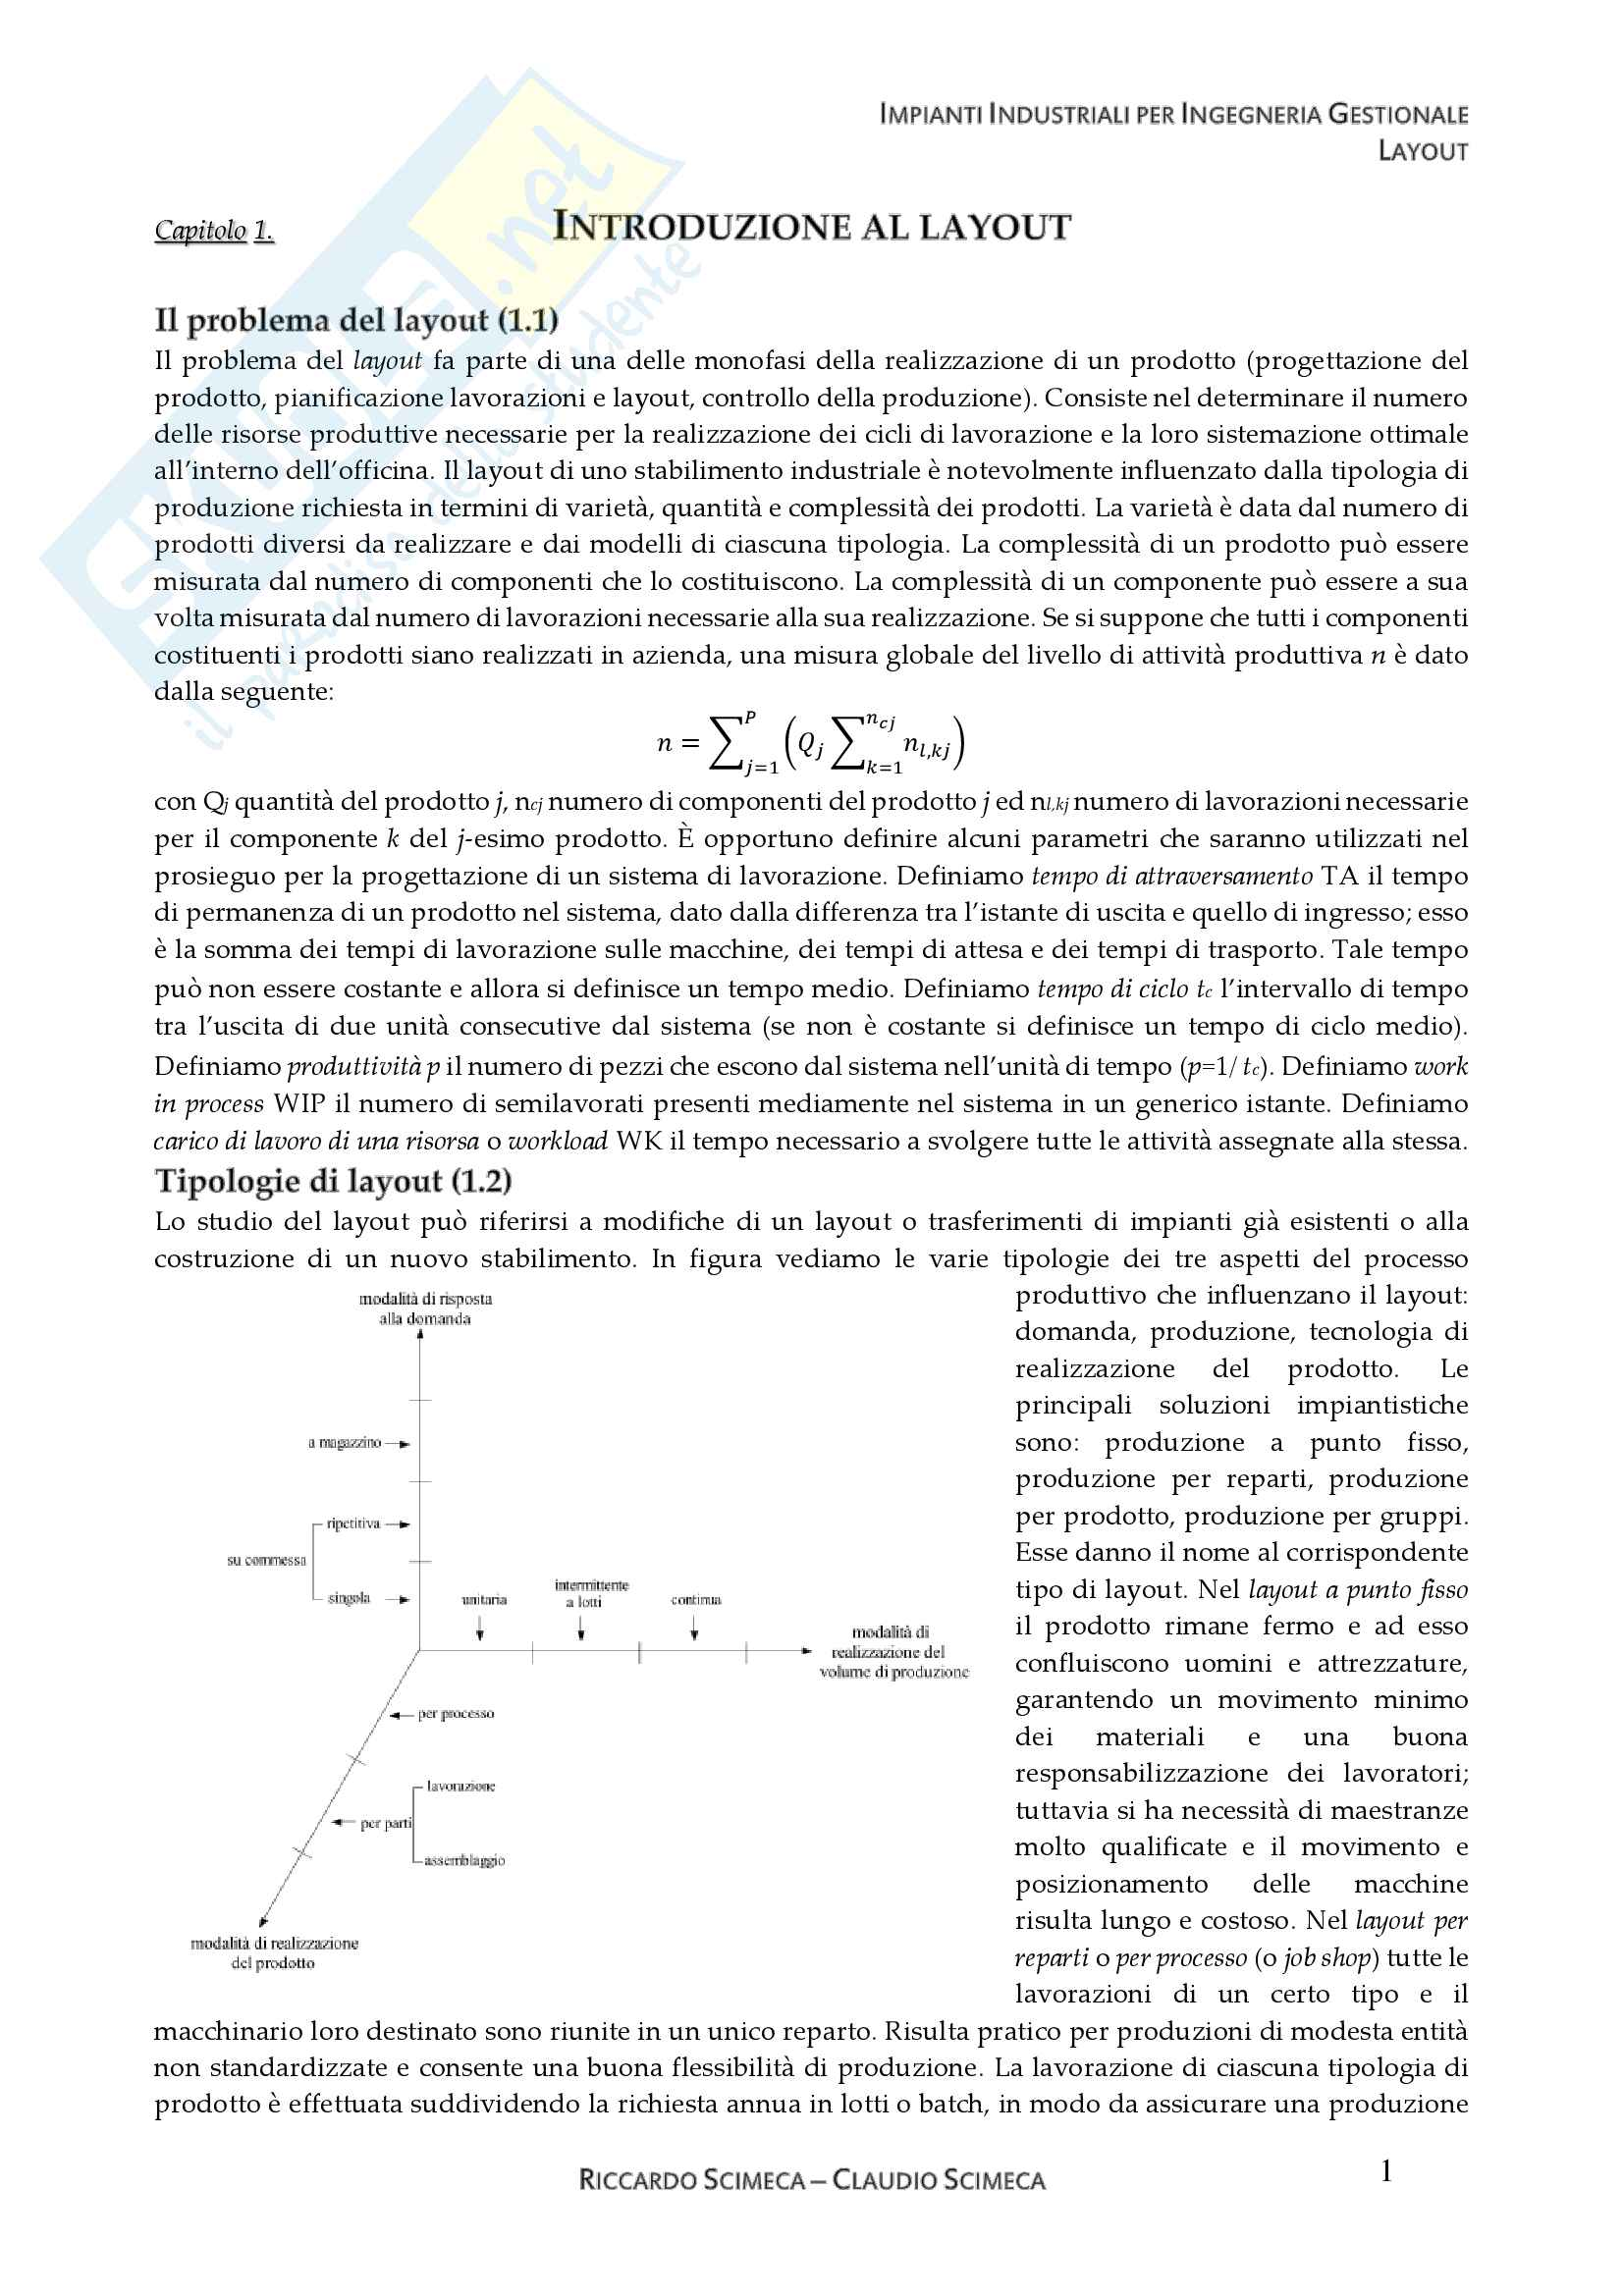 Impianti Industriali - Layout Pag. 2